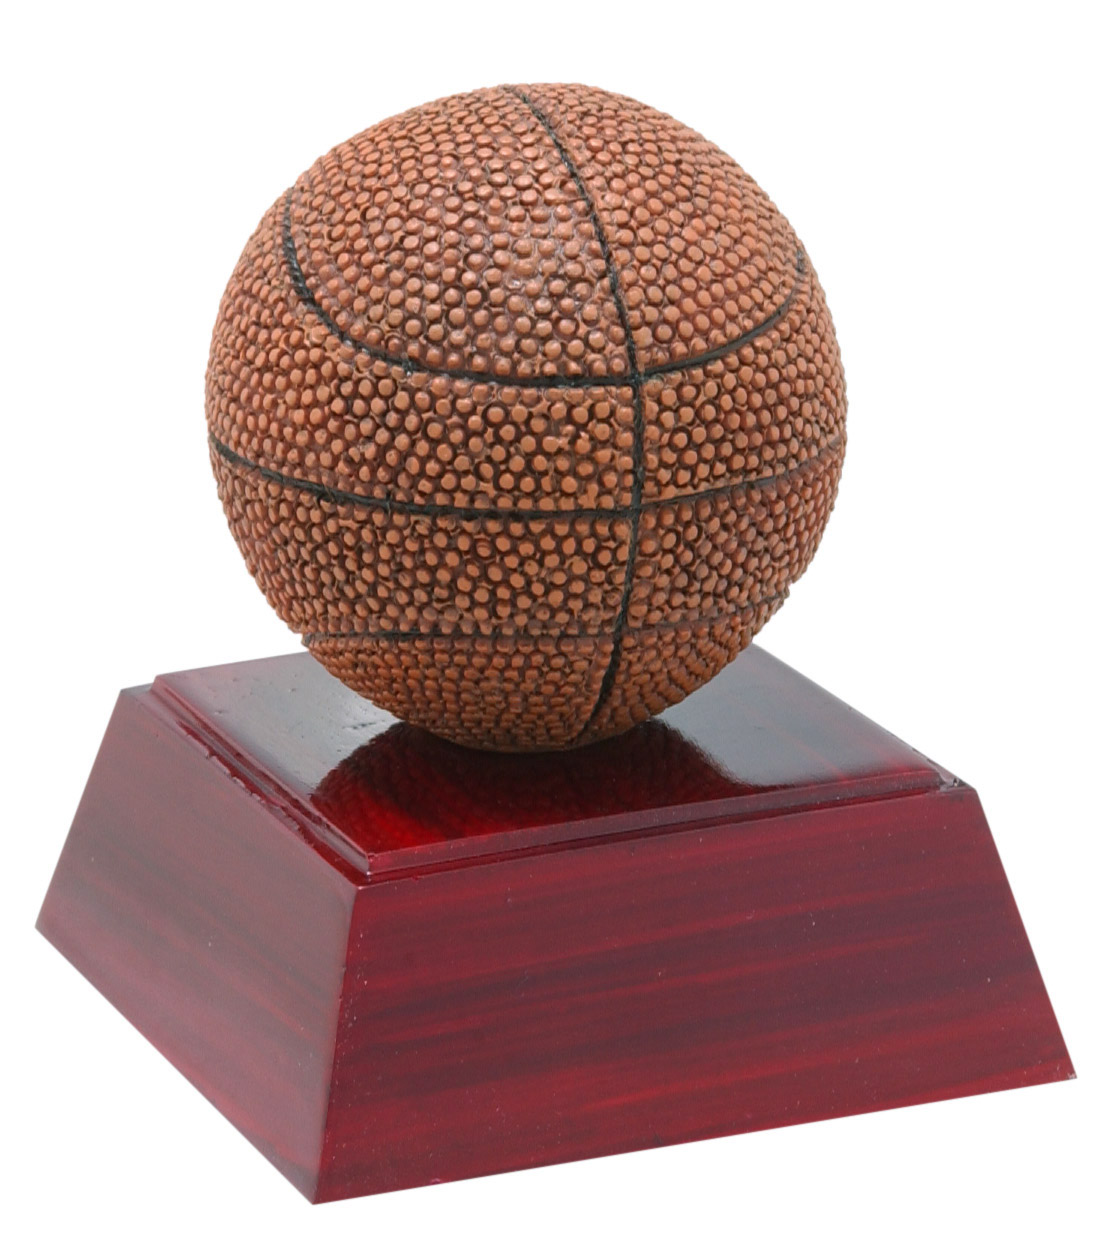 Basketball 2 - RS-411